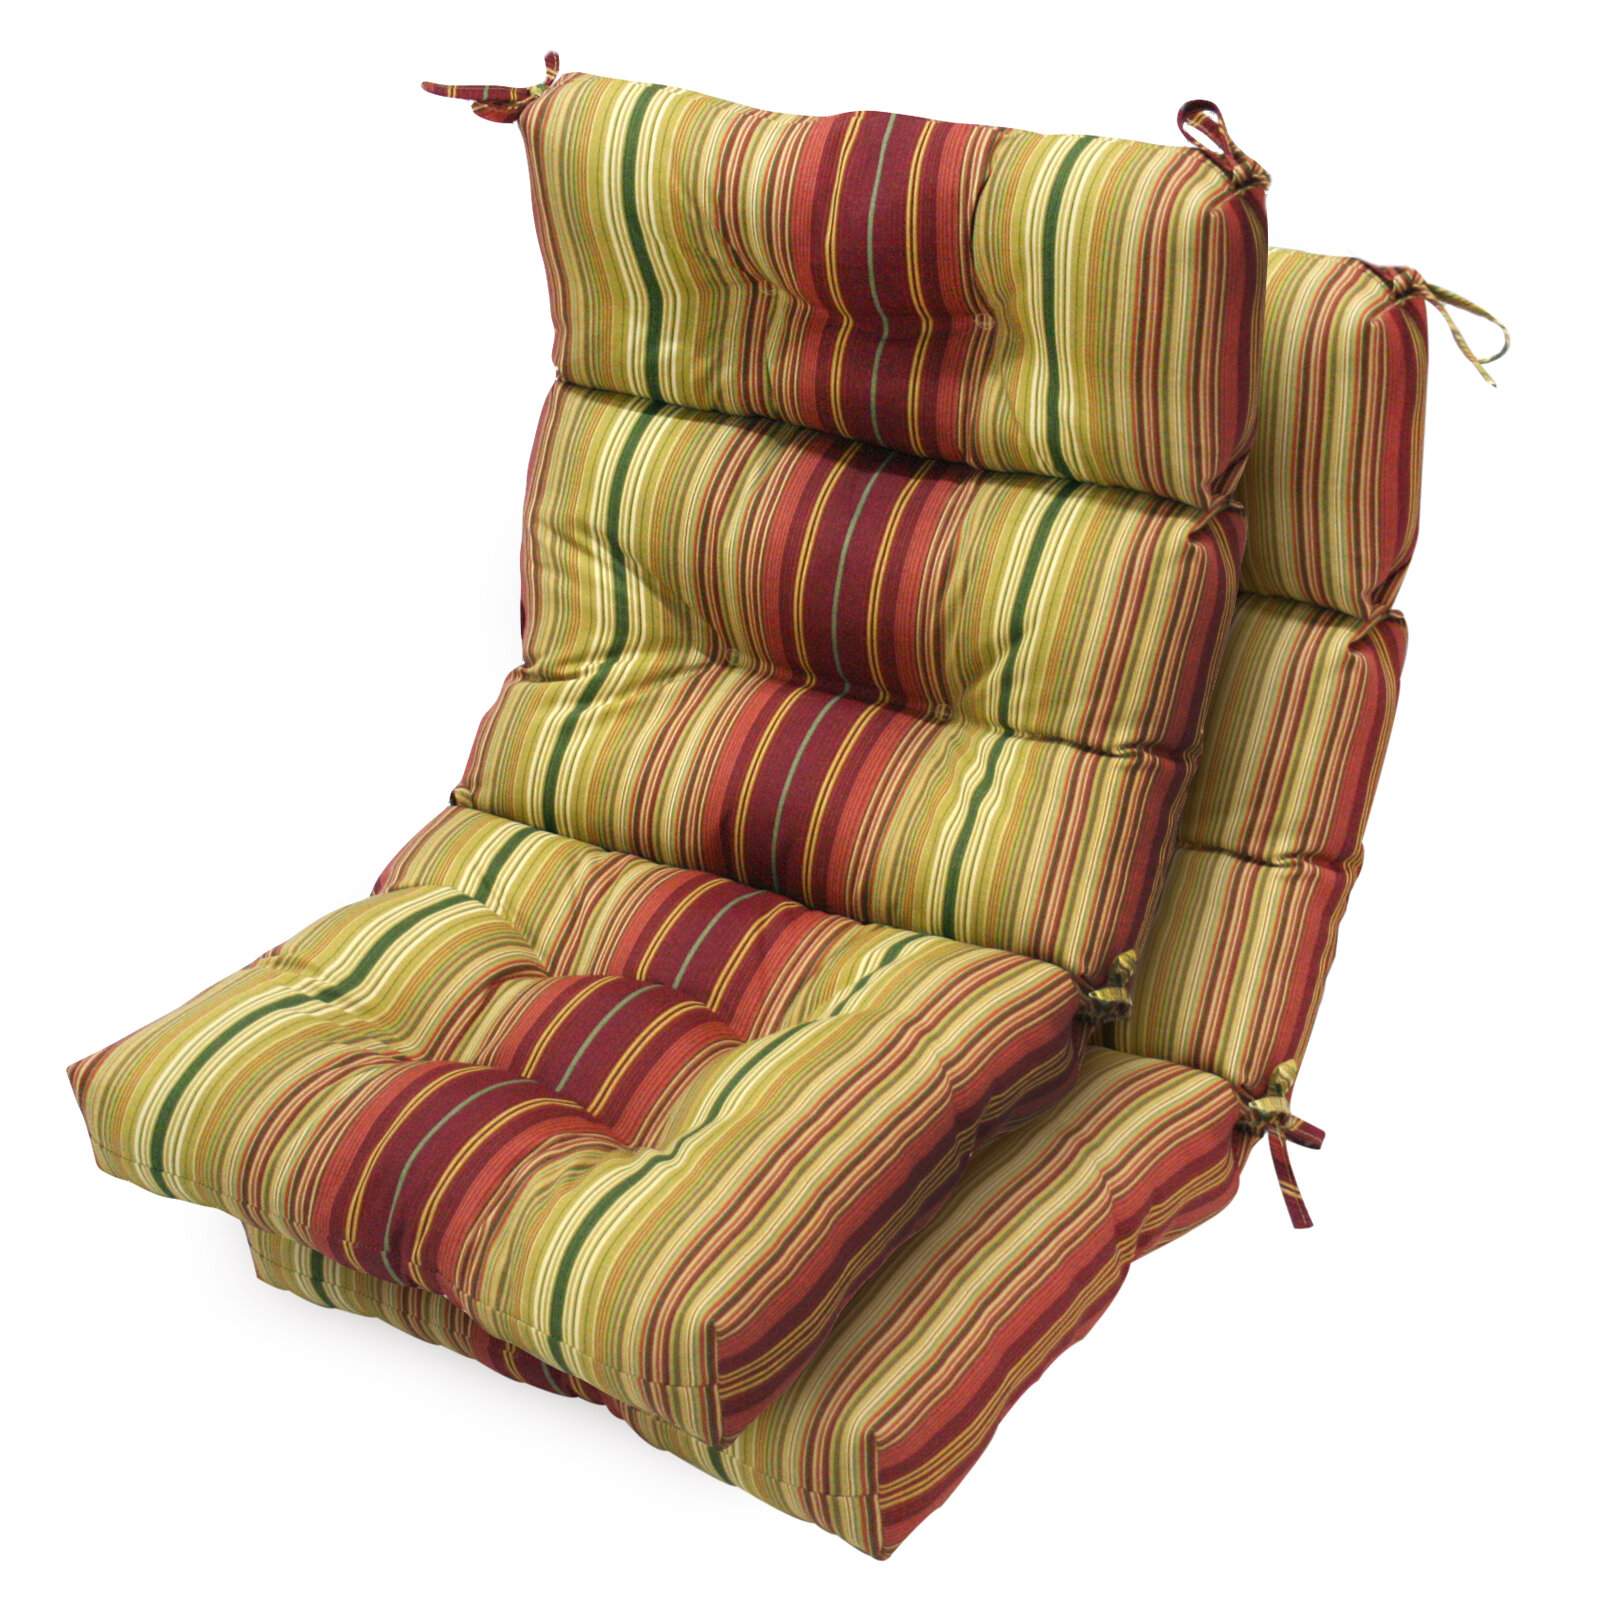 greendale home fashions outdoor high back chair cushion. Black Bedroom Furniture Sets. Home Design Ideas